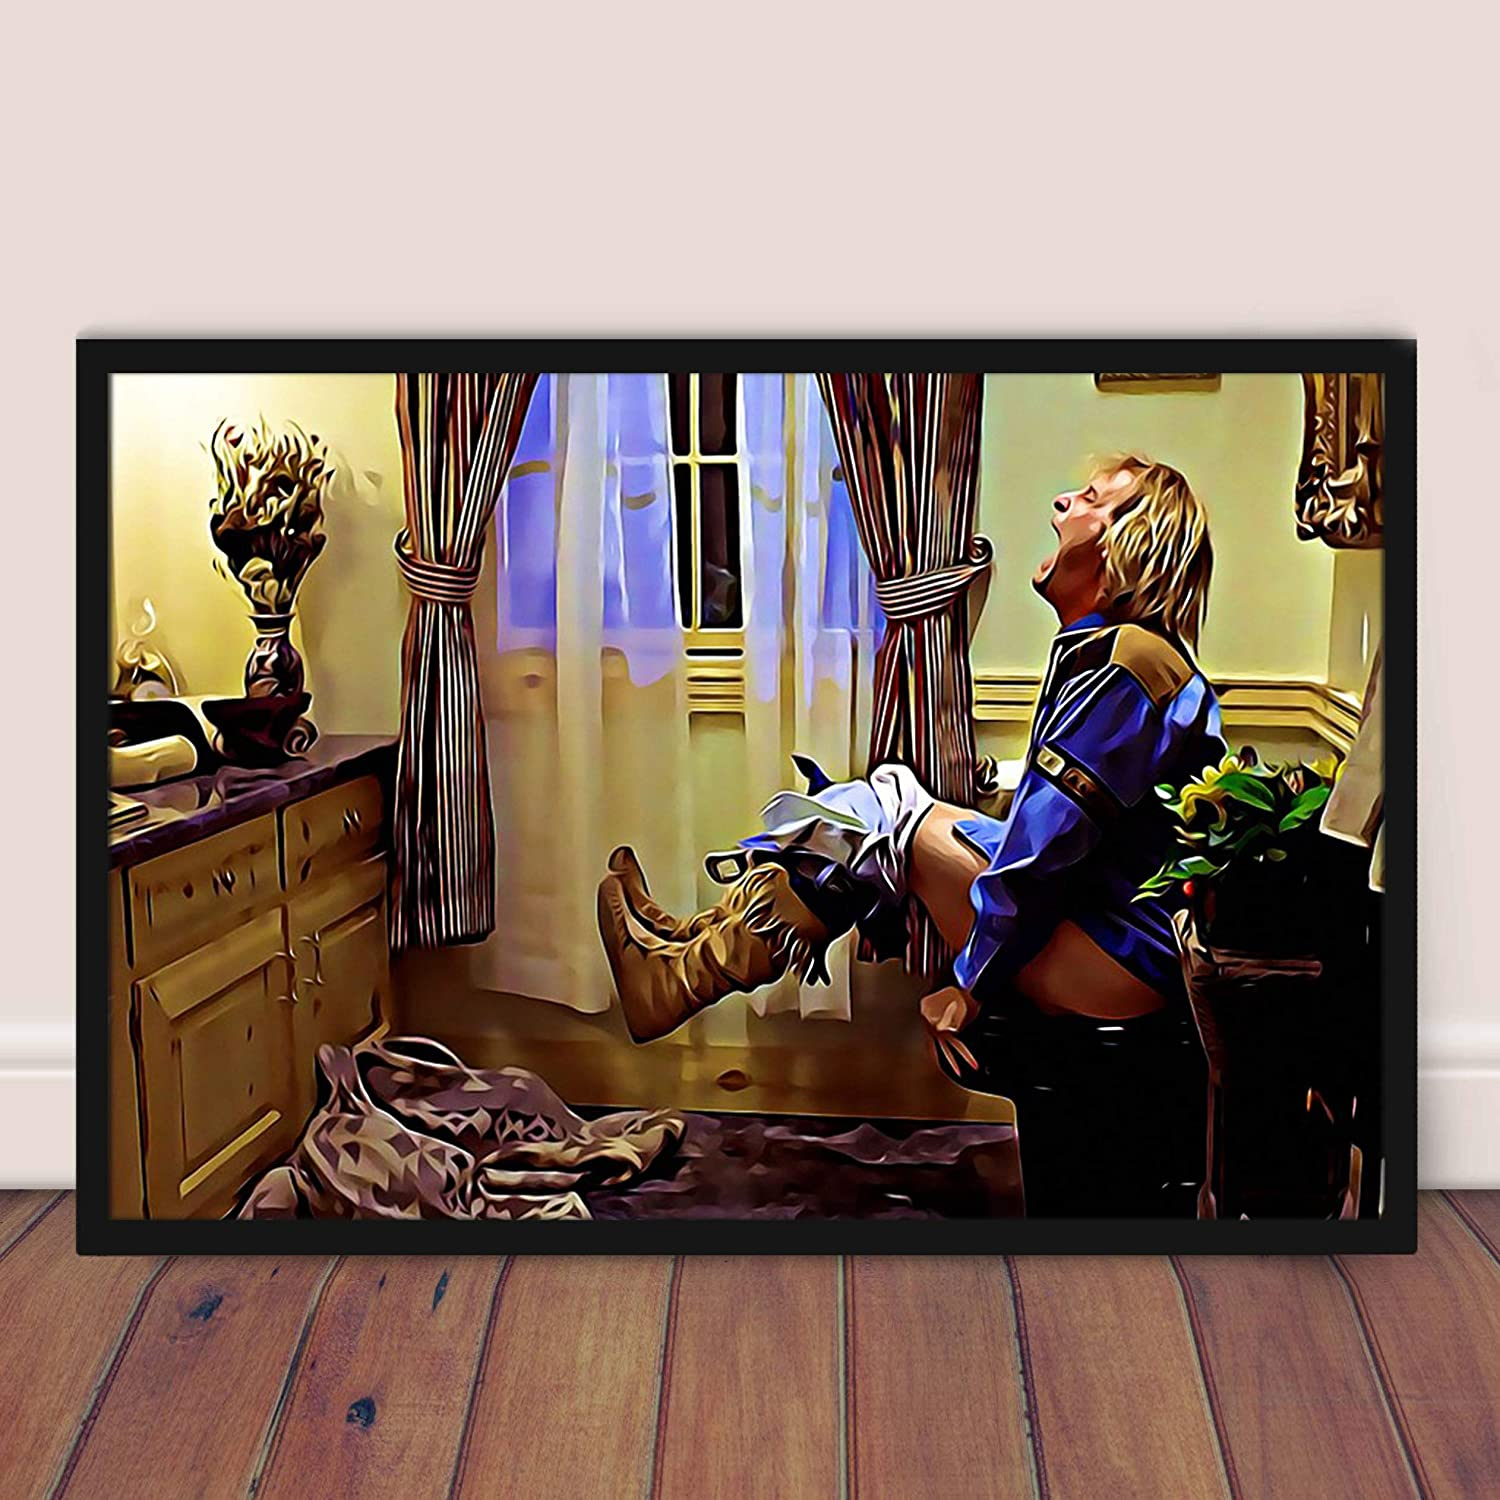 Amazon Com Dumb And Dumber Bathroom Poster Funny Harry Dunne Toilet Home Decor Unframed Poster Posters Prints